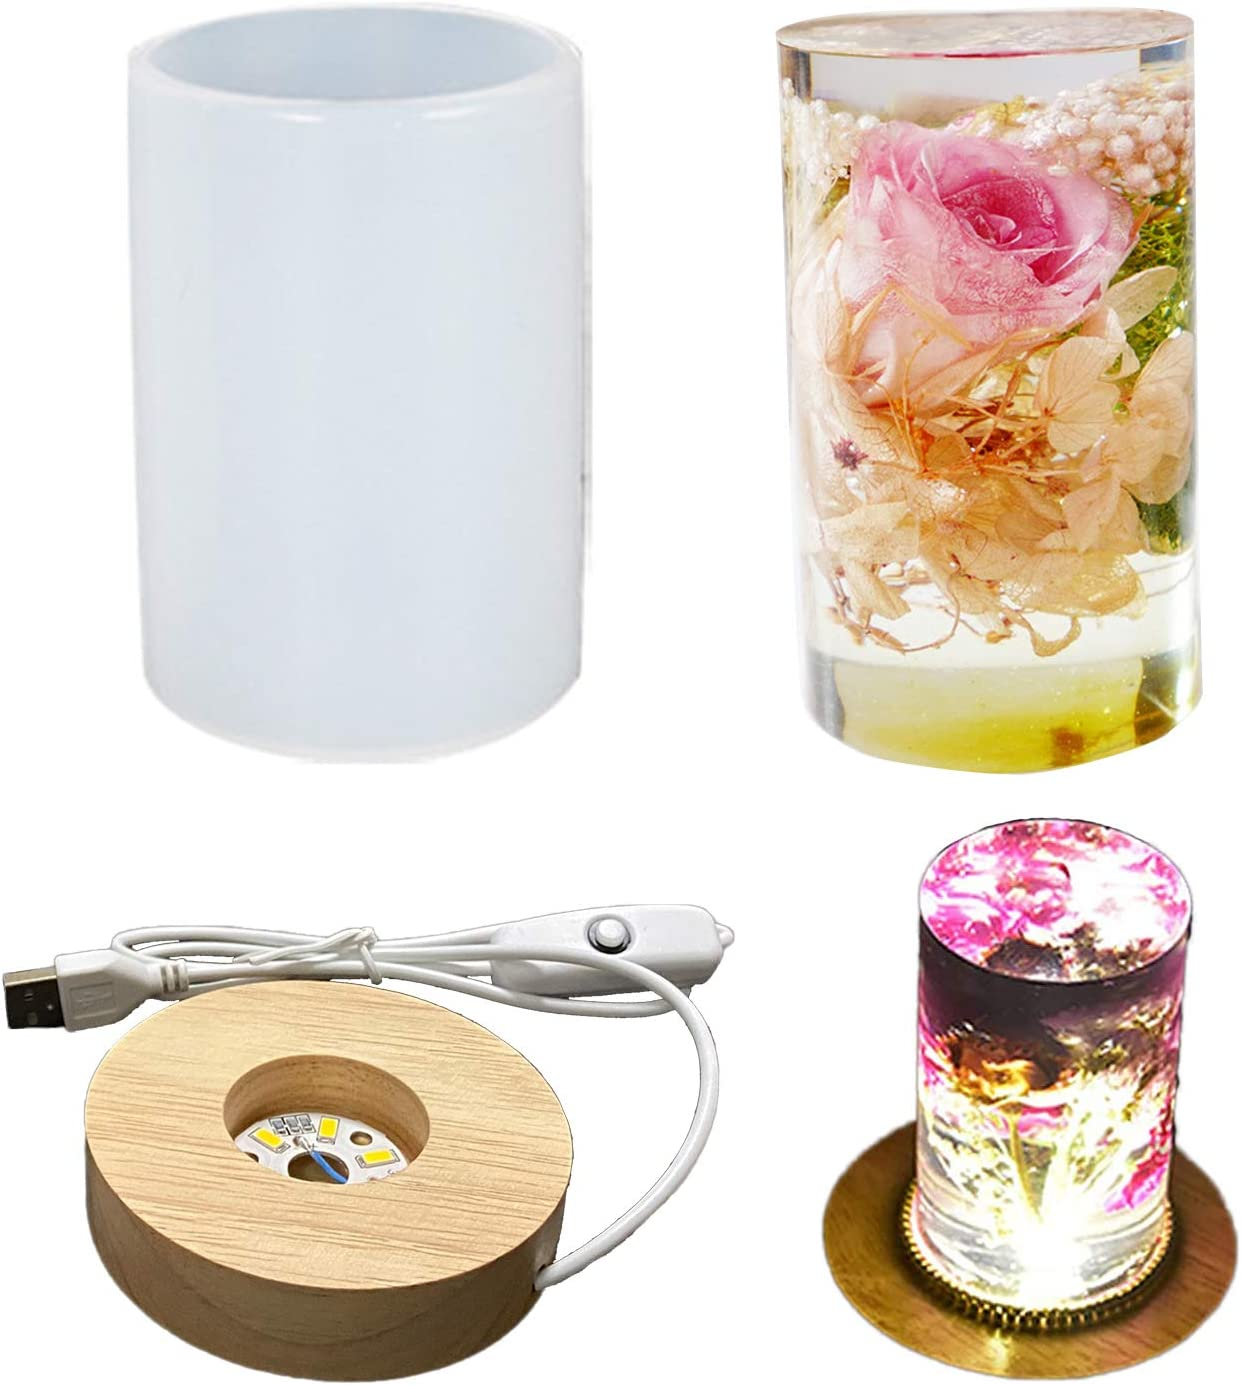 SOWFLYGO Silicone Molds Cylinder Gorgeous Light wi Mold Resin Outlet SALE